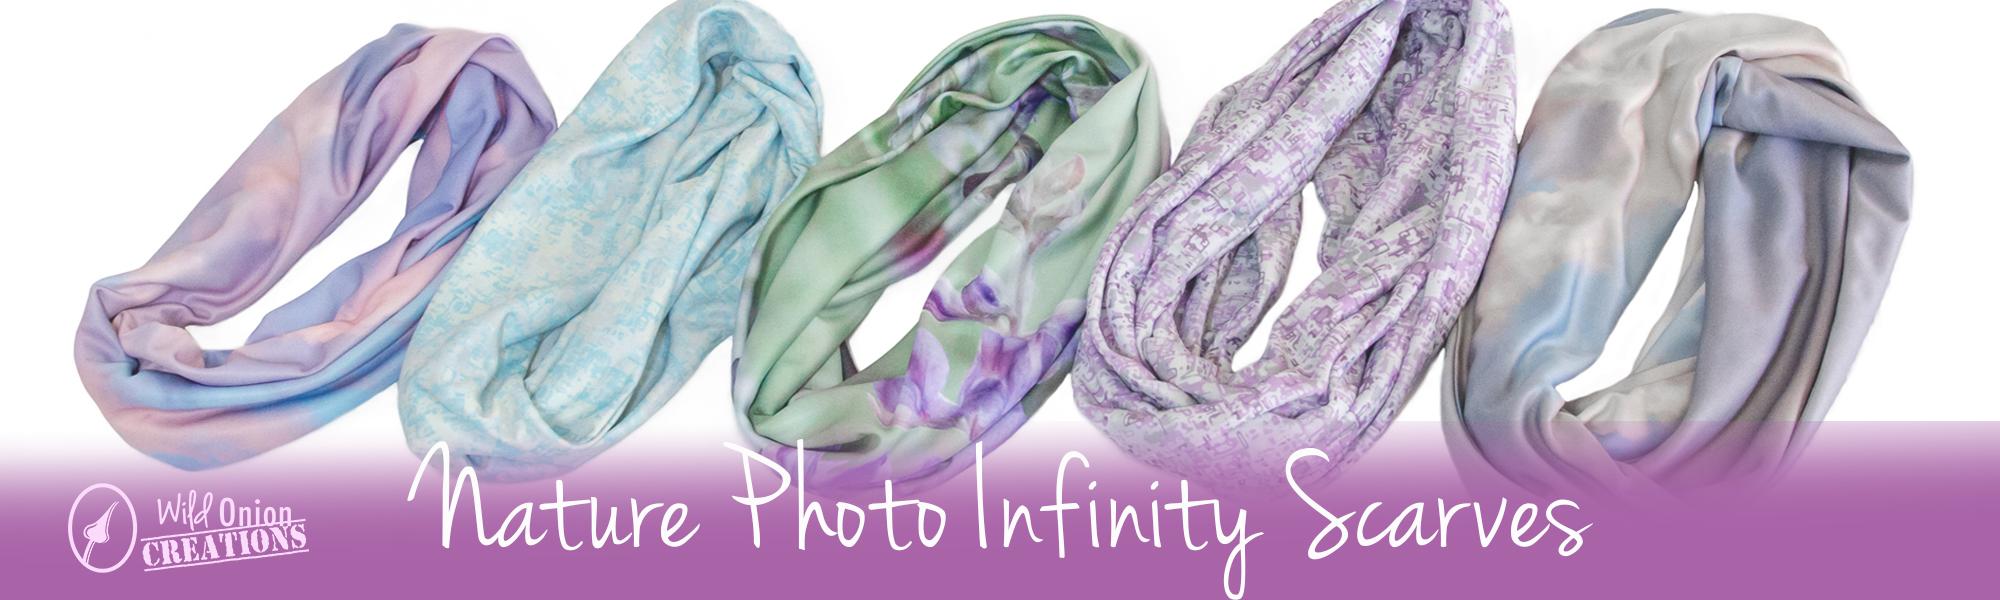 wild onion creations photo infinity scarves wildflowers and sky